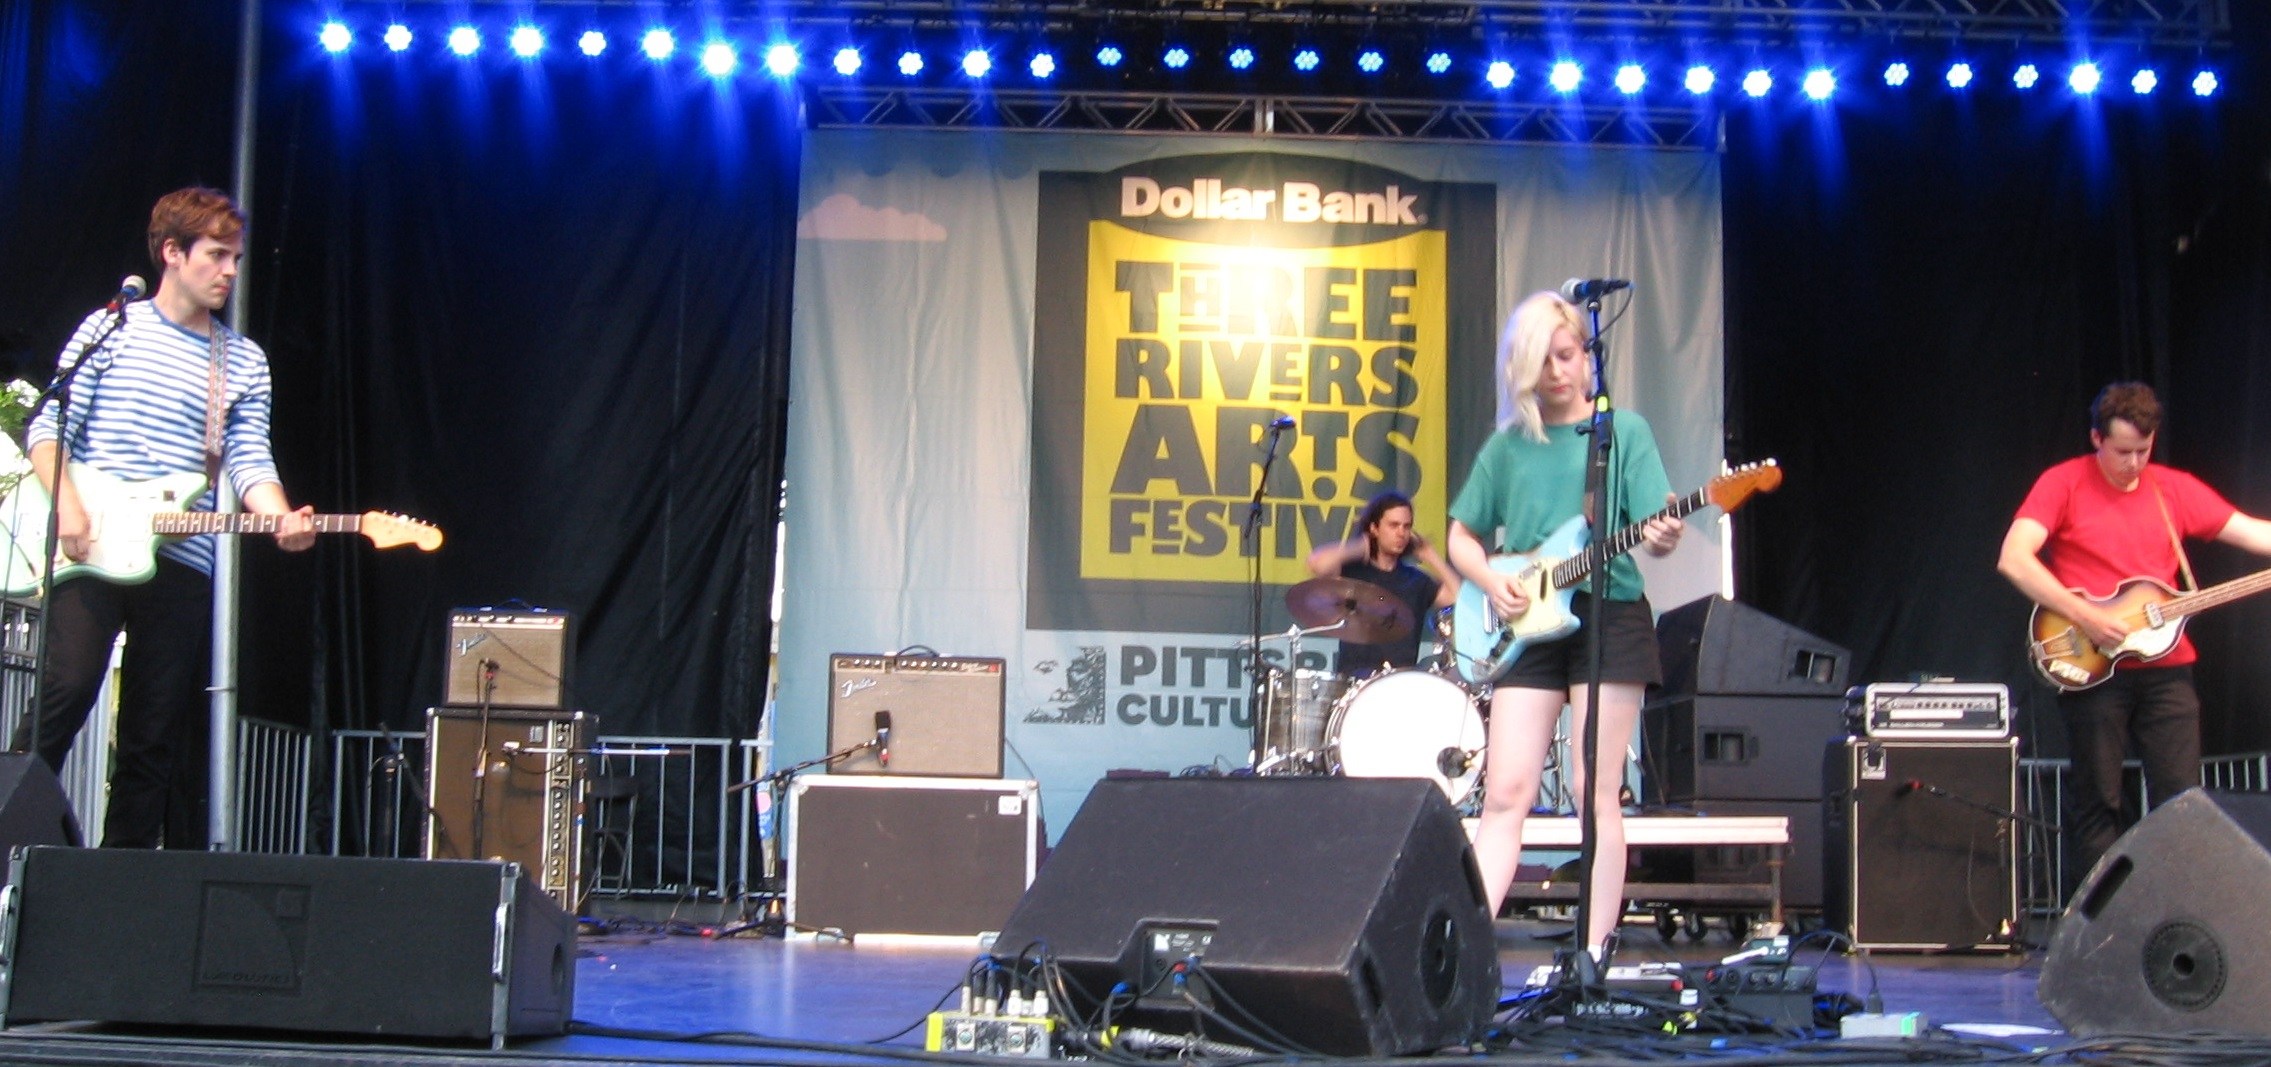 Alvvays in Concert at Three Rivers Arts Festival